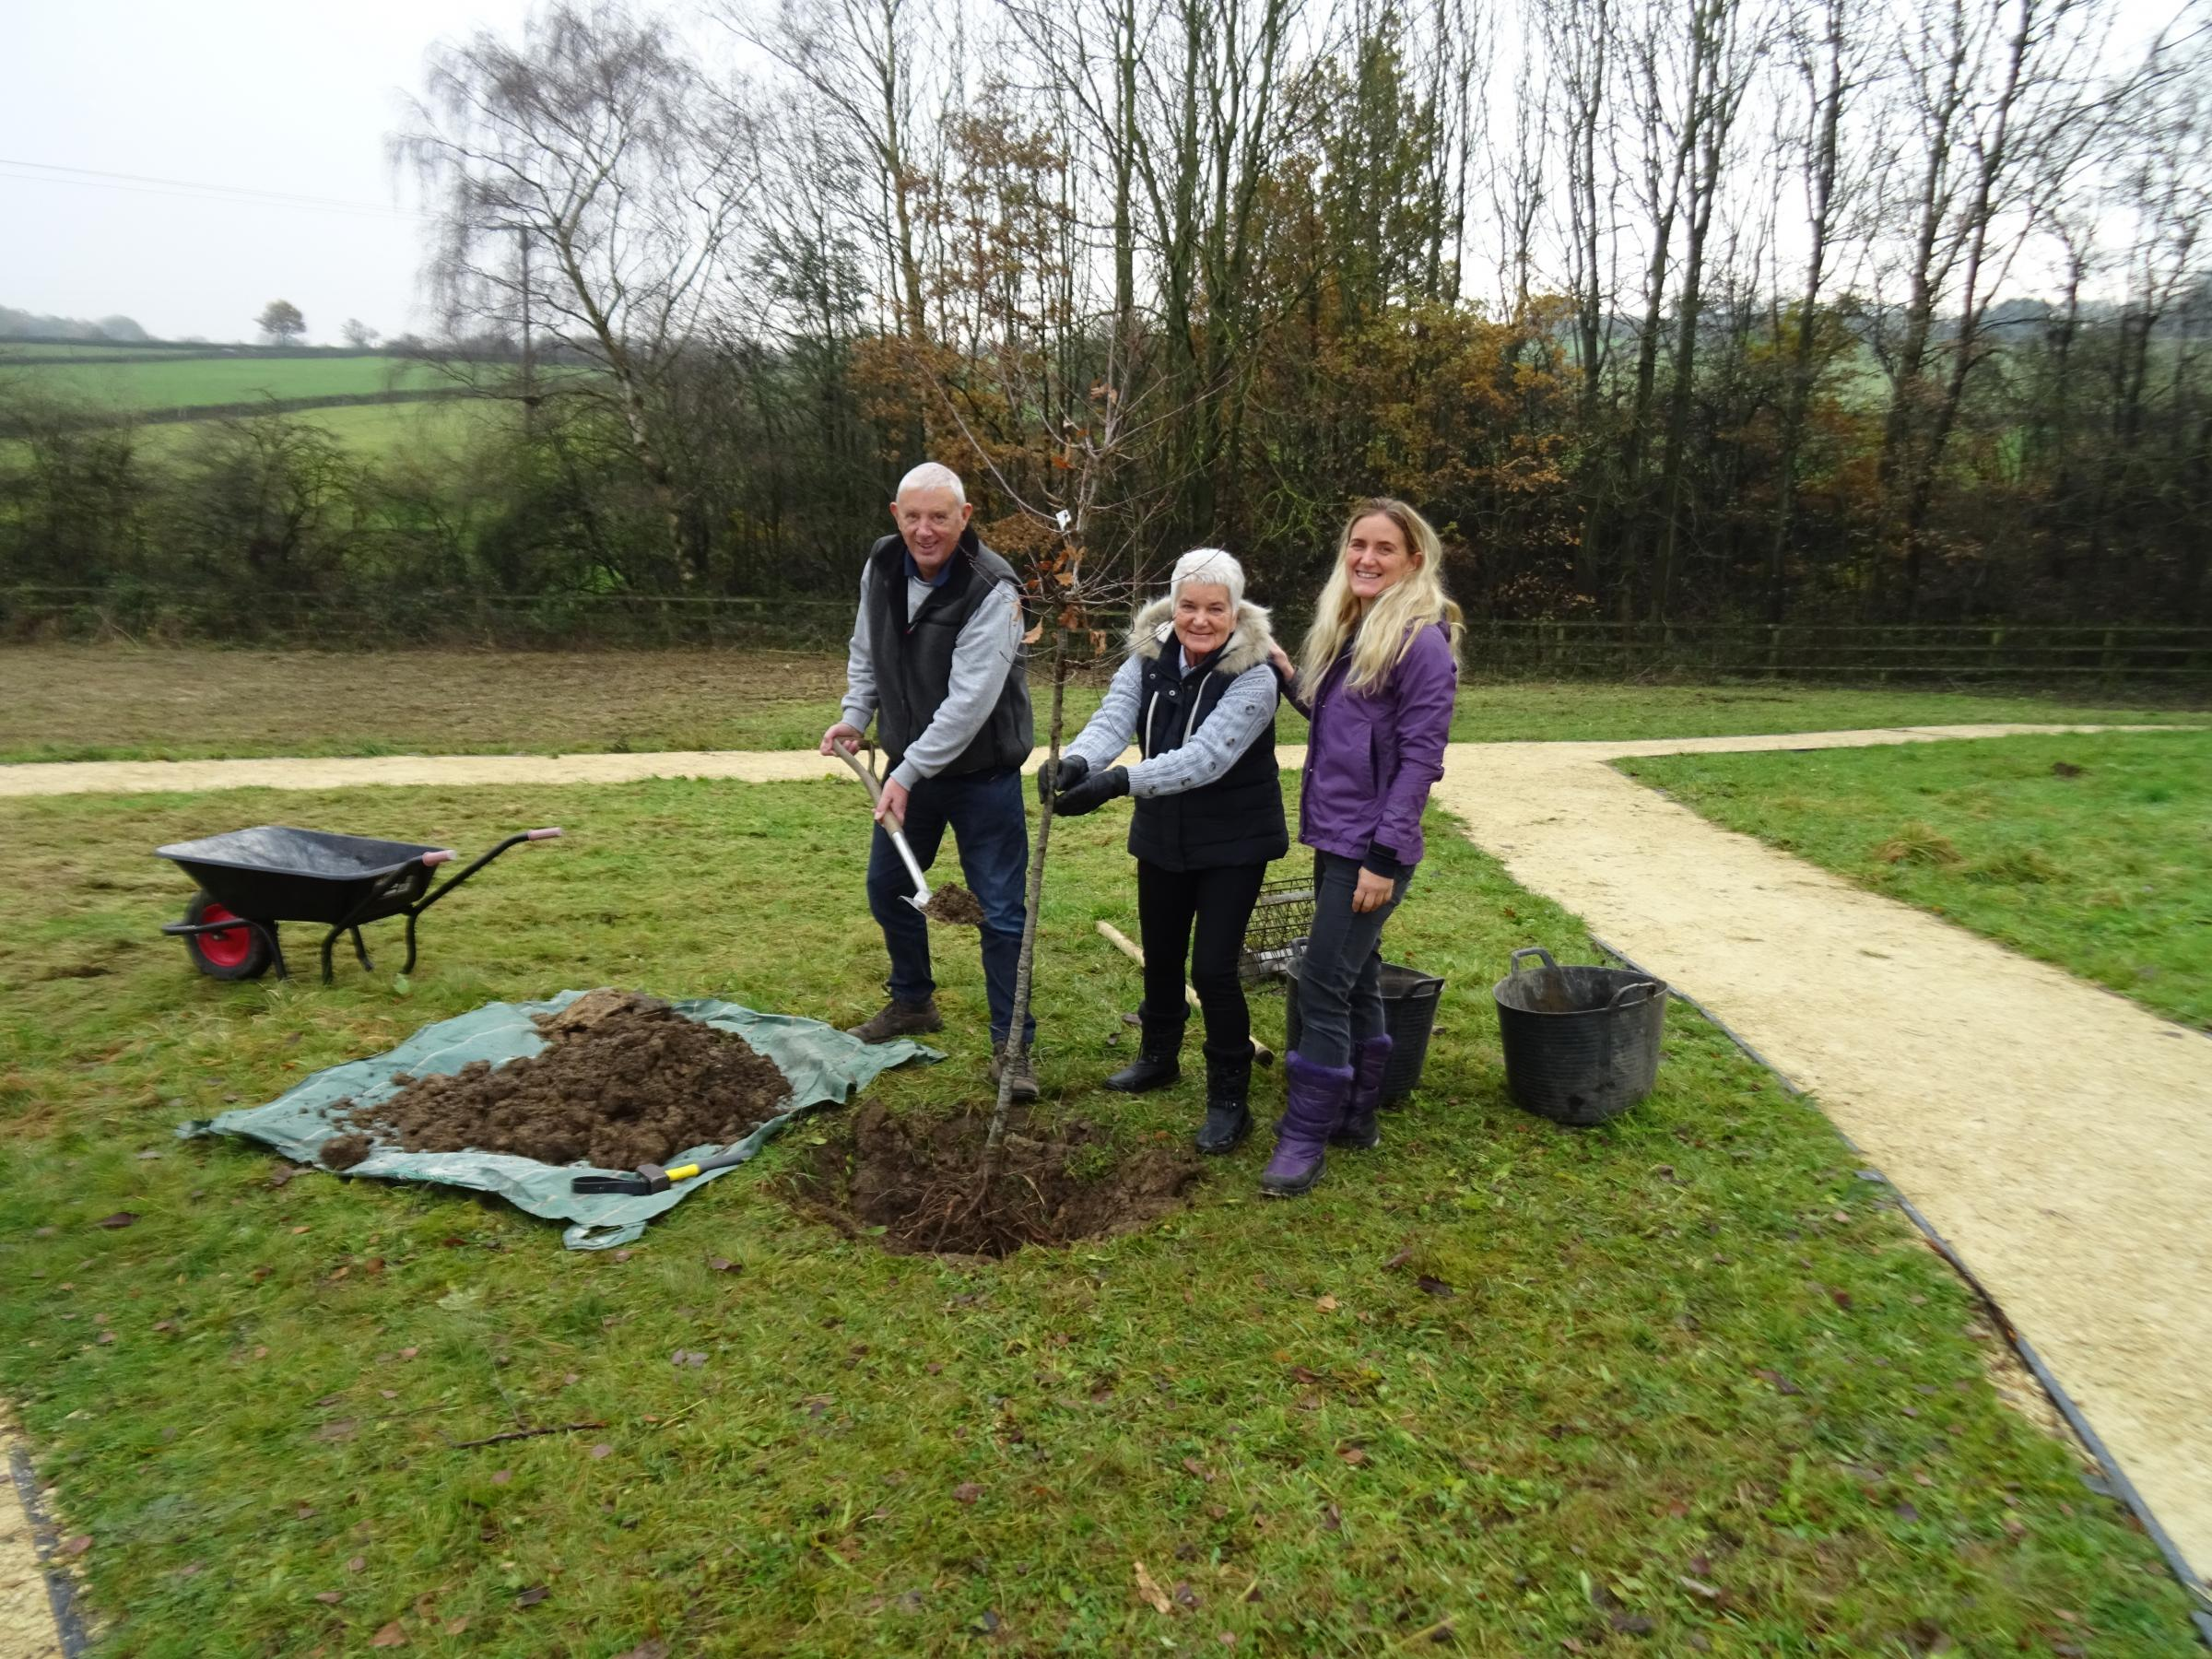 About 80 people turn out to plant trees at Jo Cox Community Wood